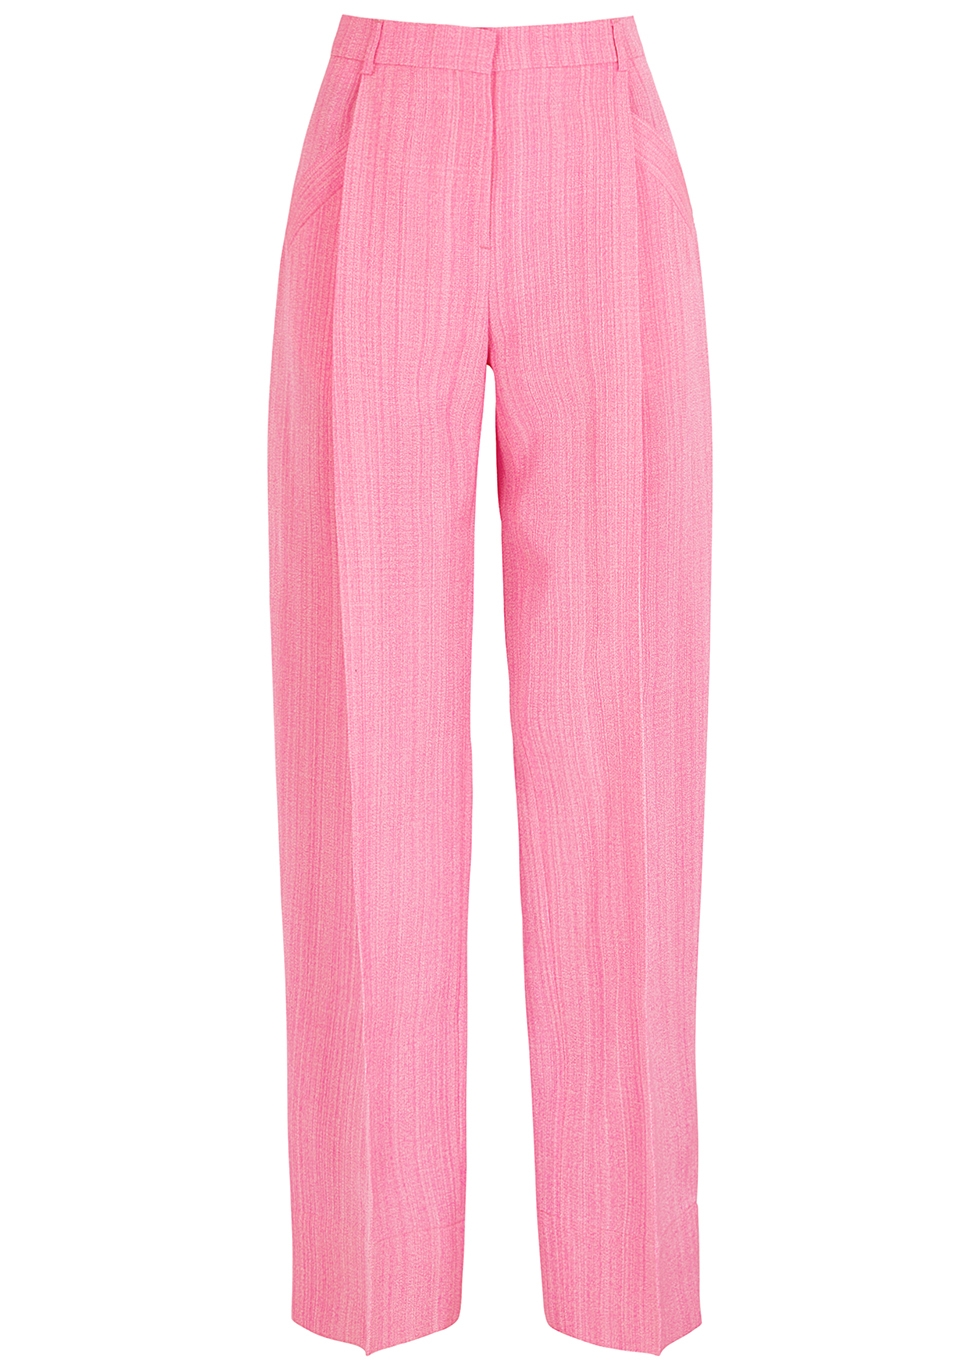 Le Pantalon Loya pink wide-leg trousers